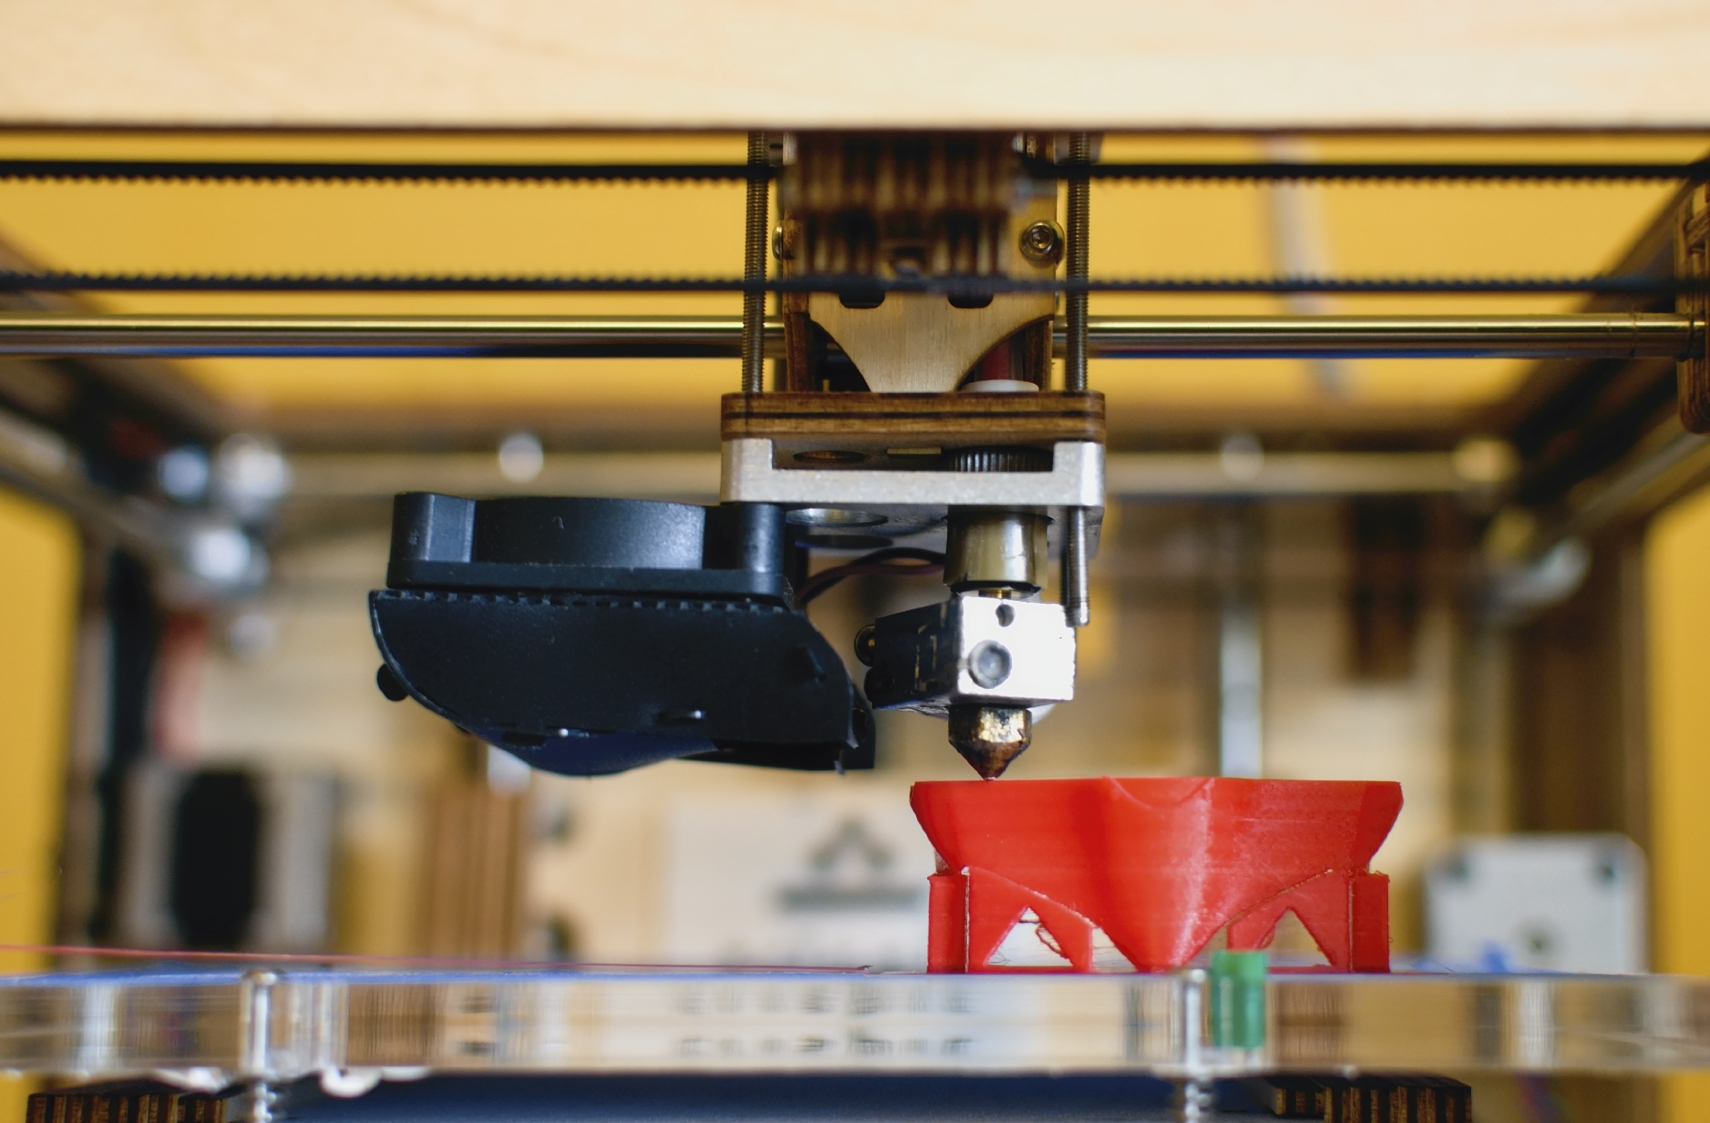 Open MakerLab 3D printing